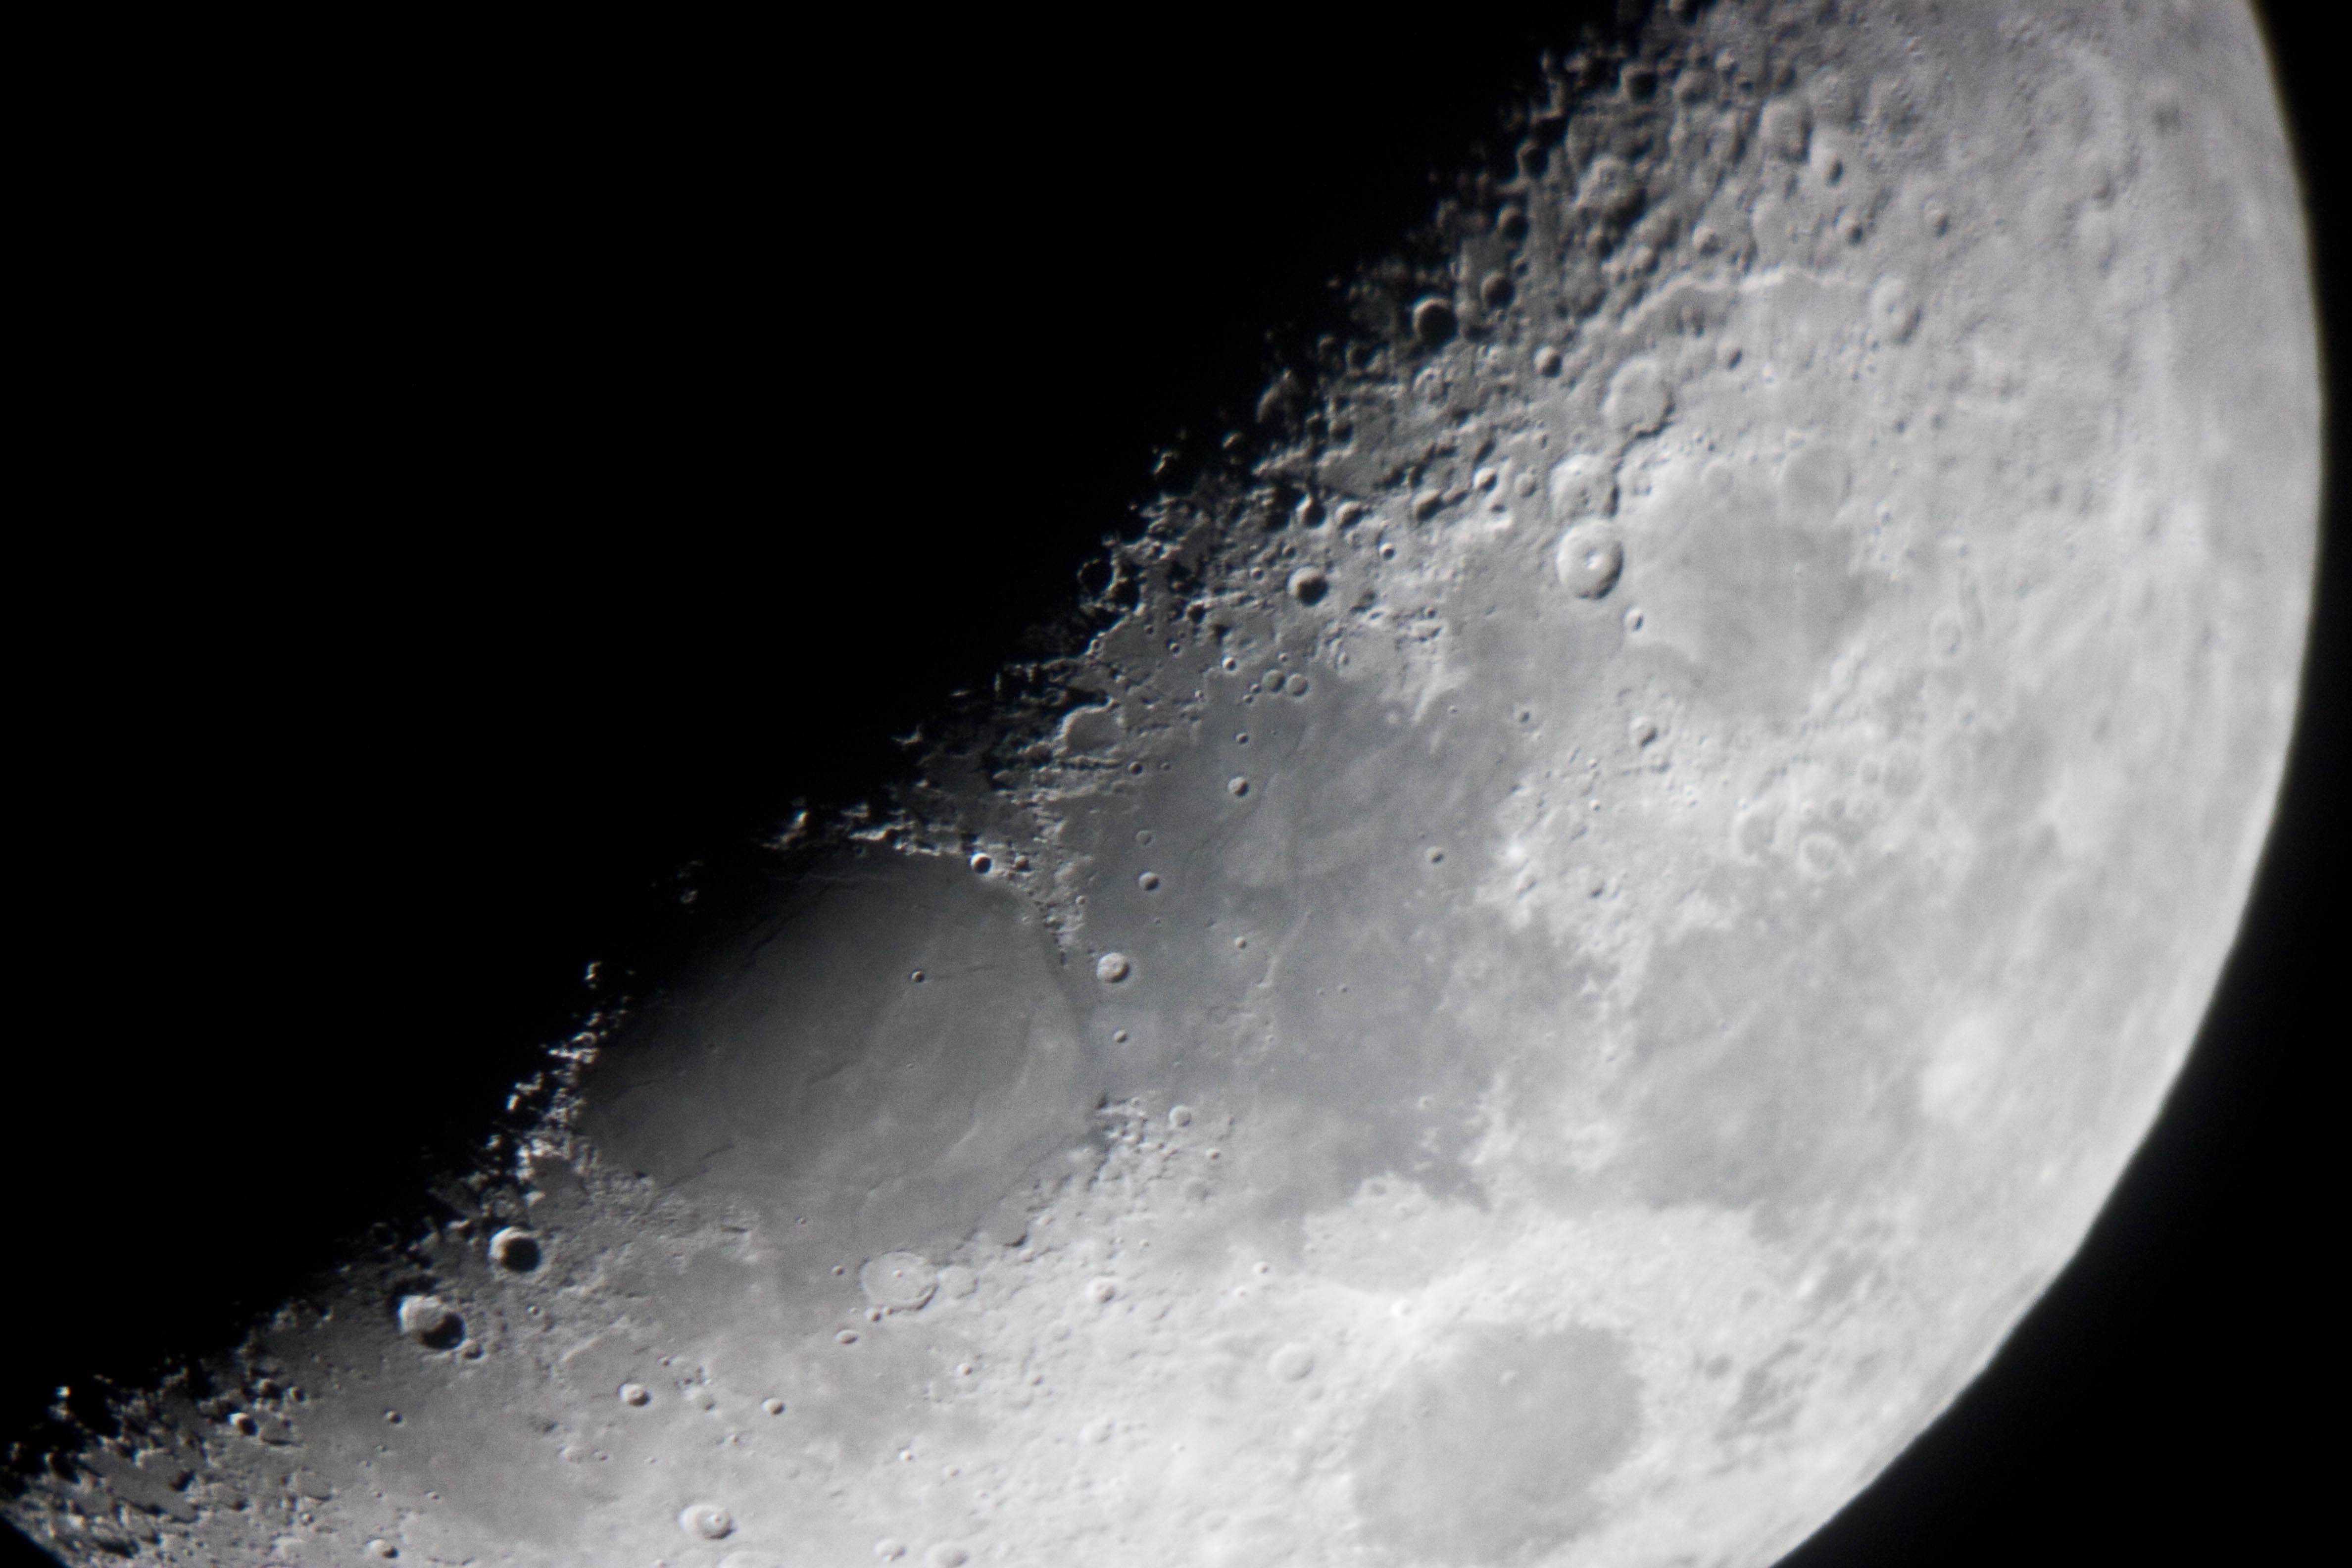 20160214 The Moon Simon AllenIMG 5773